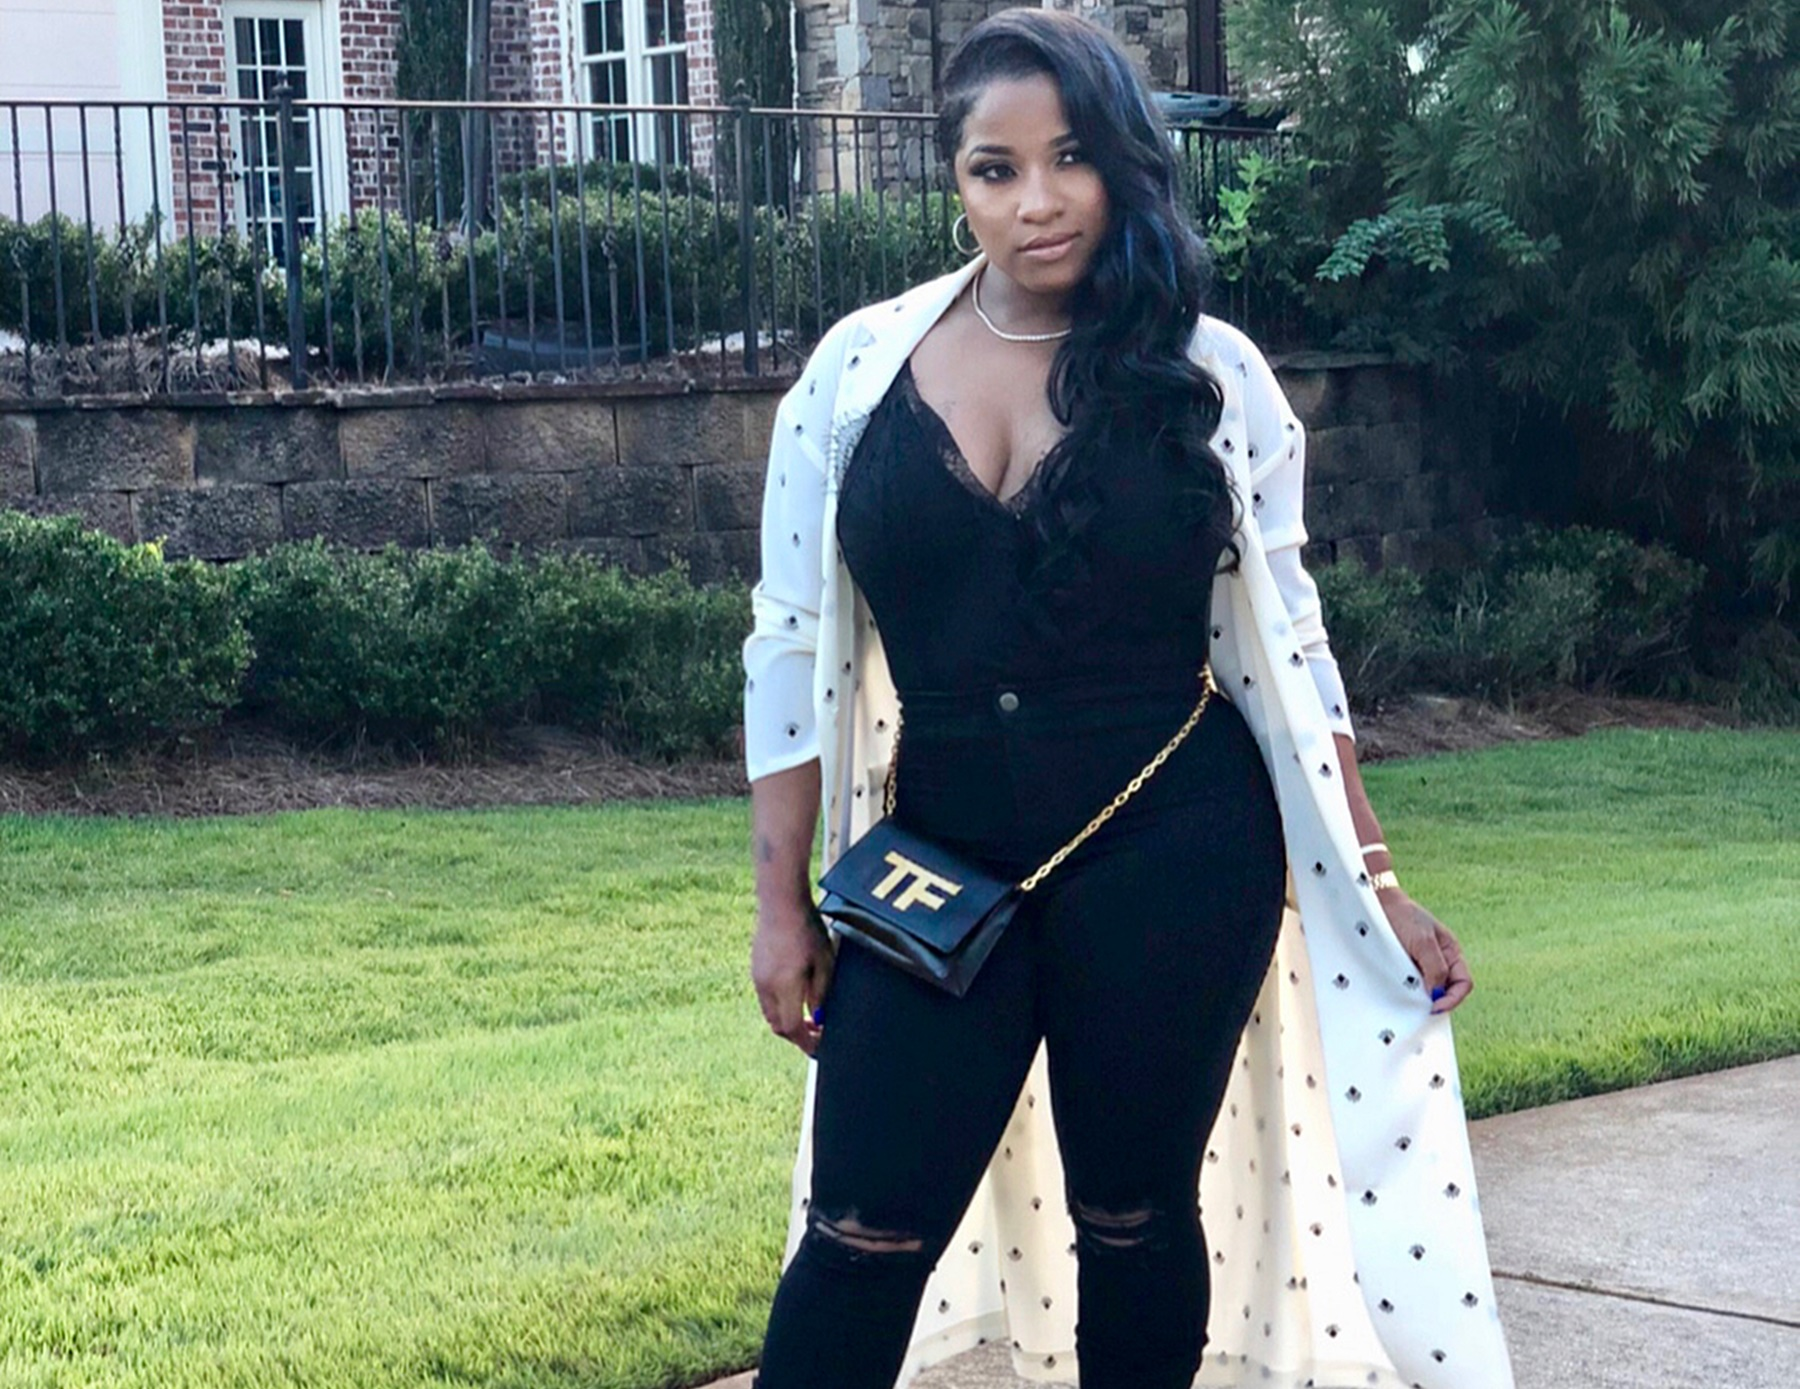 toya-wright-shares-a-photo-with-her-mom-anita-and-sister-anisha-johnson-fans-get-emotional-because-anisha-looks-just-like-late-rudy-johnson